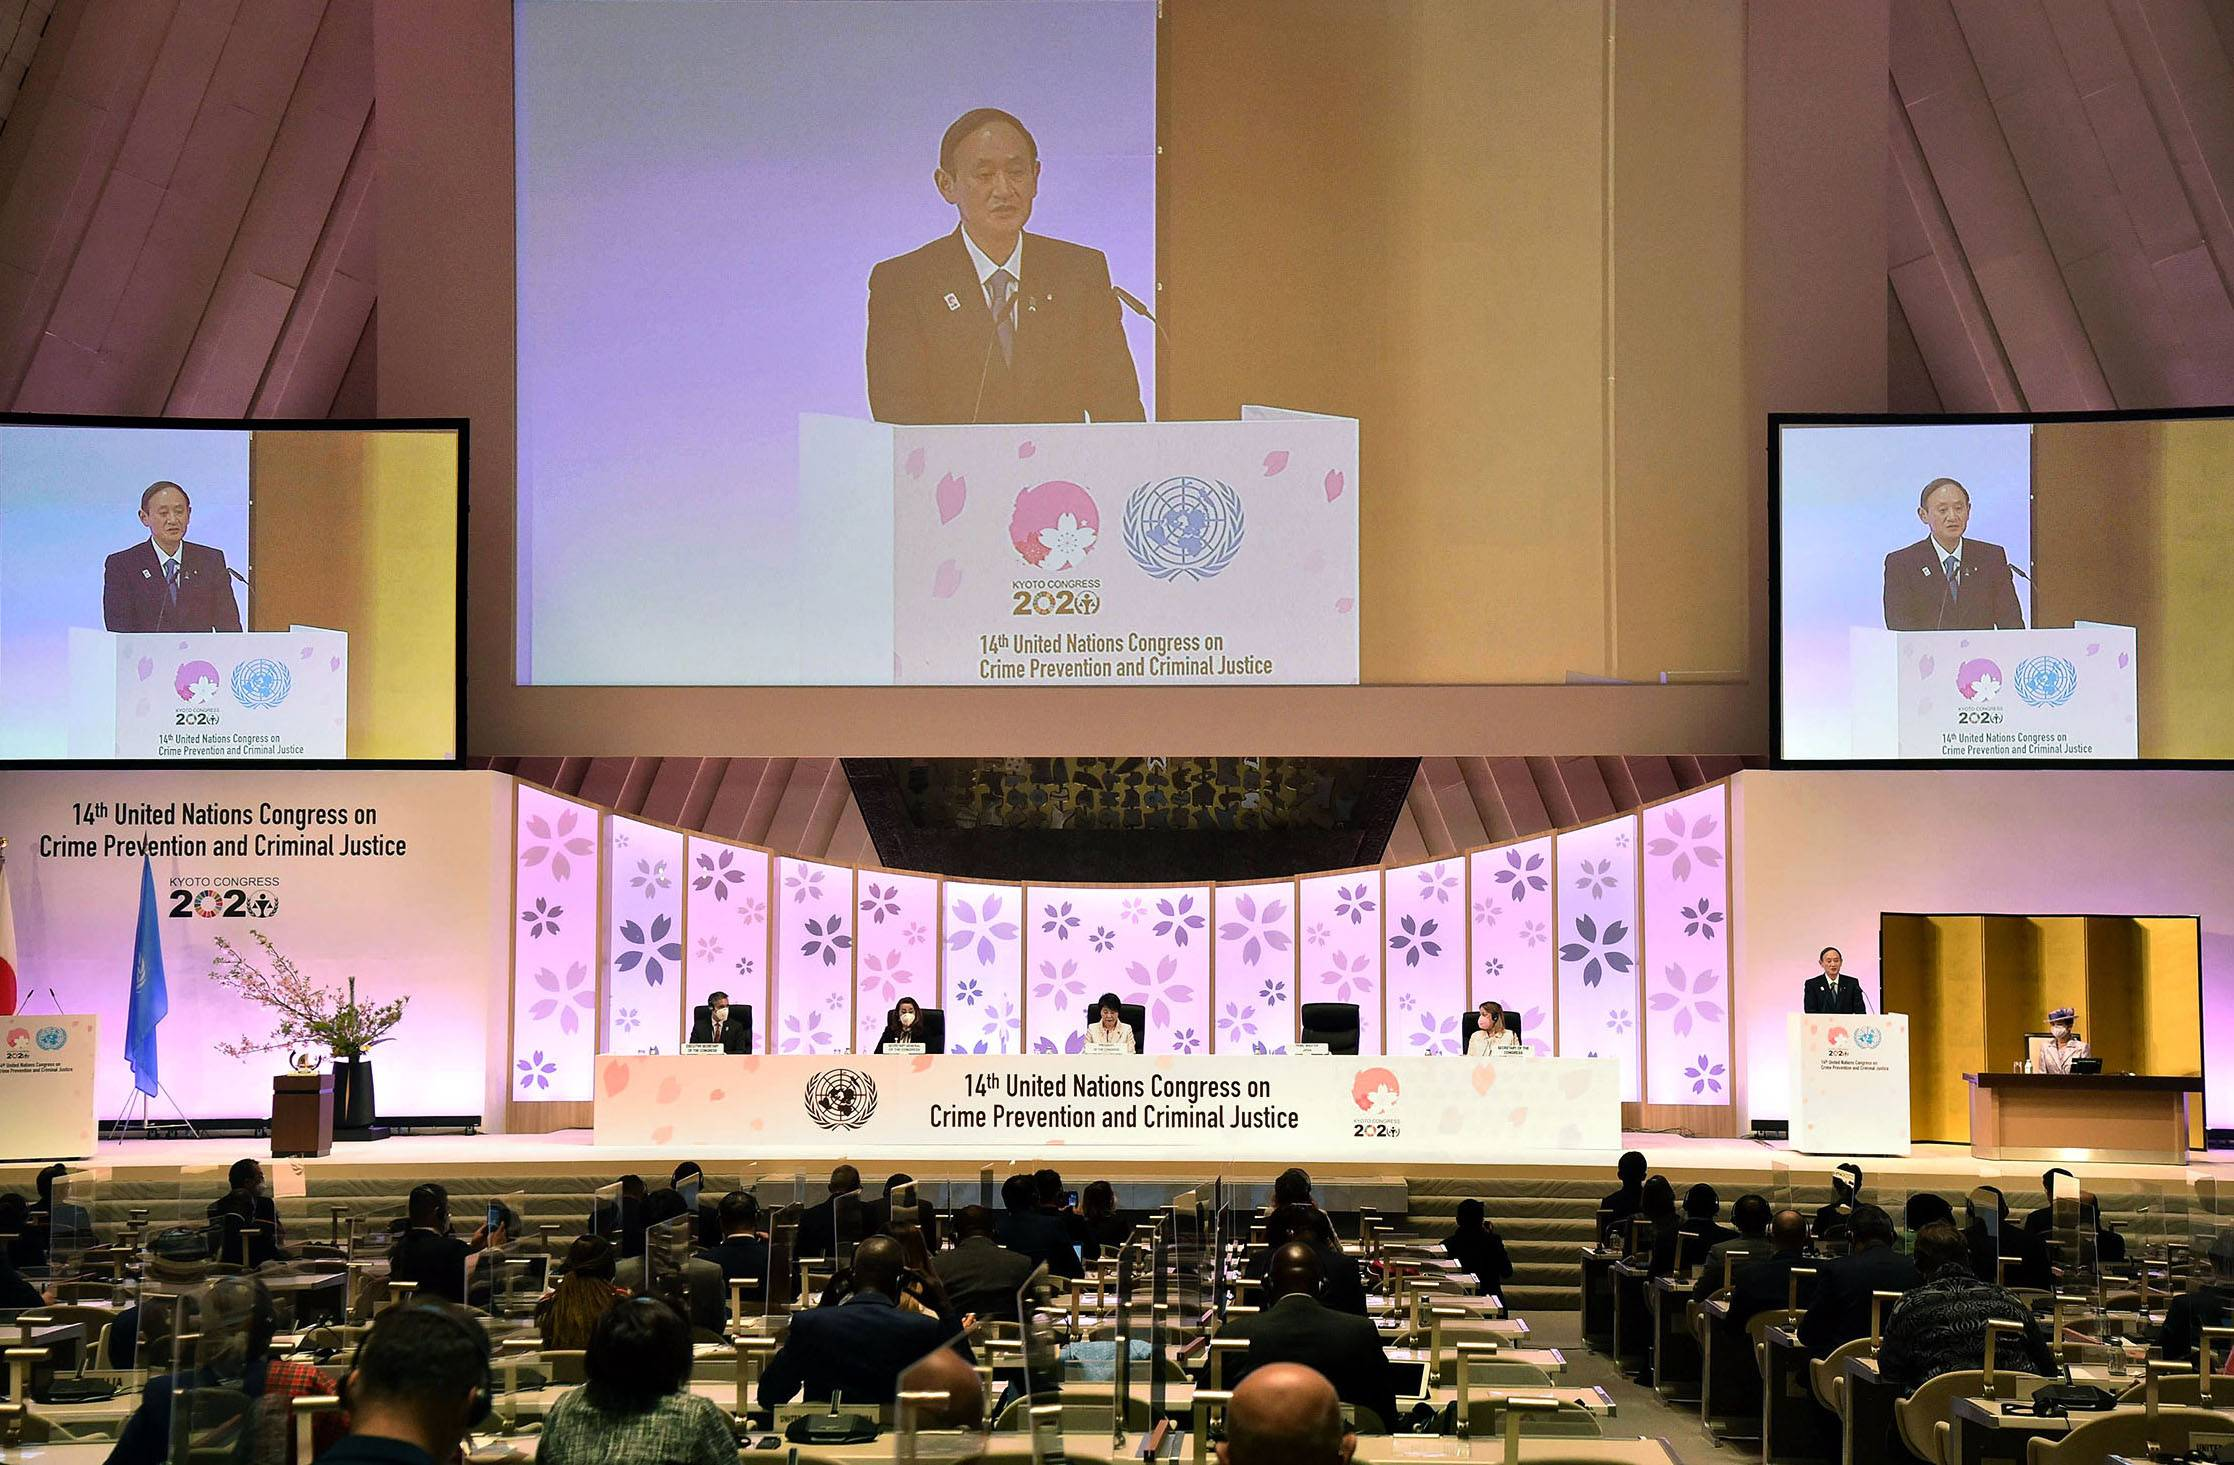 The 14th U.N. Congress on Crime Prevention and Criminal Justice takes place at the Kyoto International Conference Center on Sunday.  | POOL / VIA KYODO